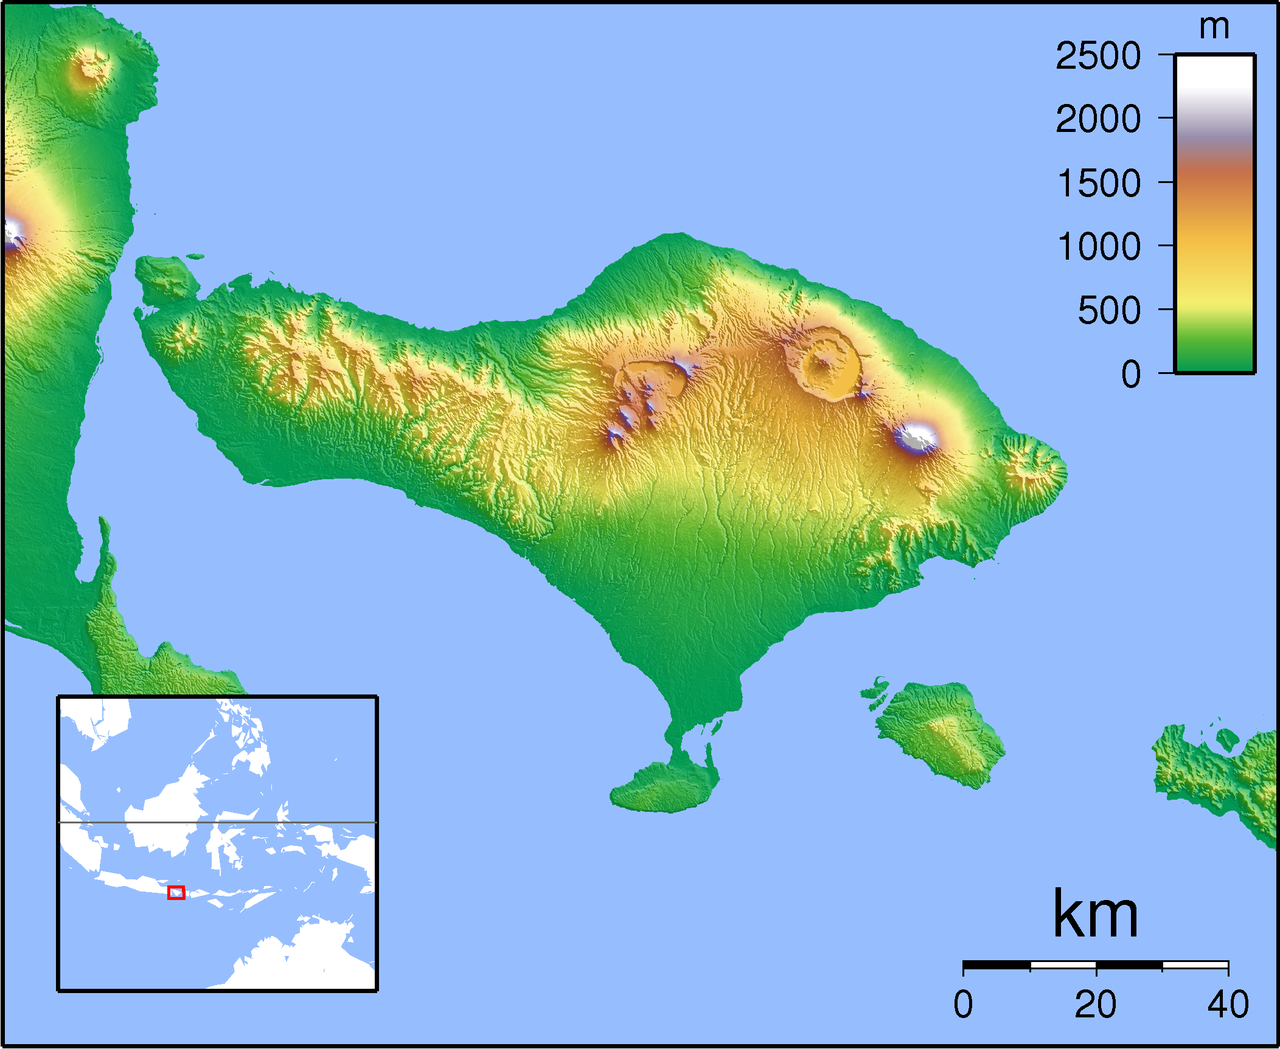 Look at this map. The white tip is the volcano currently erupting (Agung). Now look at the huge ass caldera (10x13 km) to the northwest. That is what is left from a very old (>20,000 years) eruption. Standing on the rim of that caldera and realizing the scope of what must have happened was mind blowing. I really hope scientists today could tell if people were siting on a powder keg like that thing was back then.